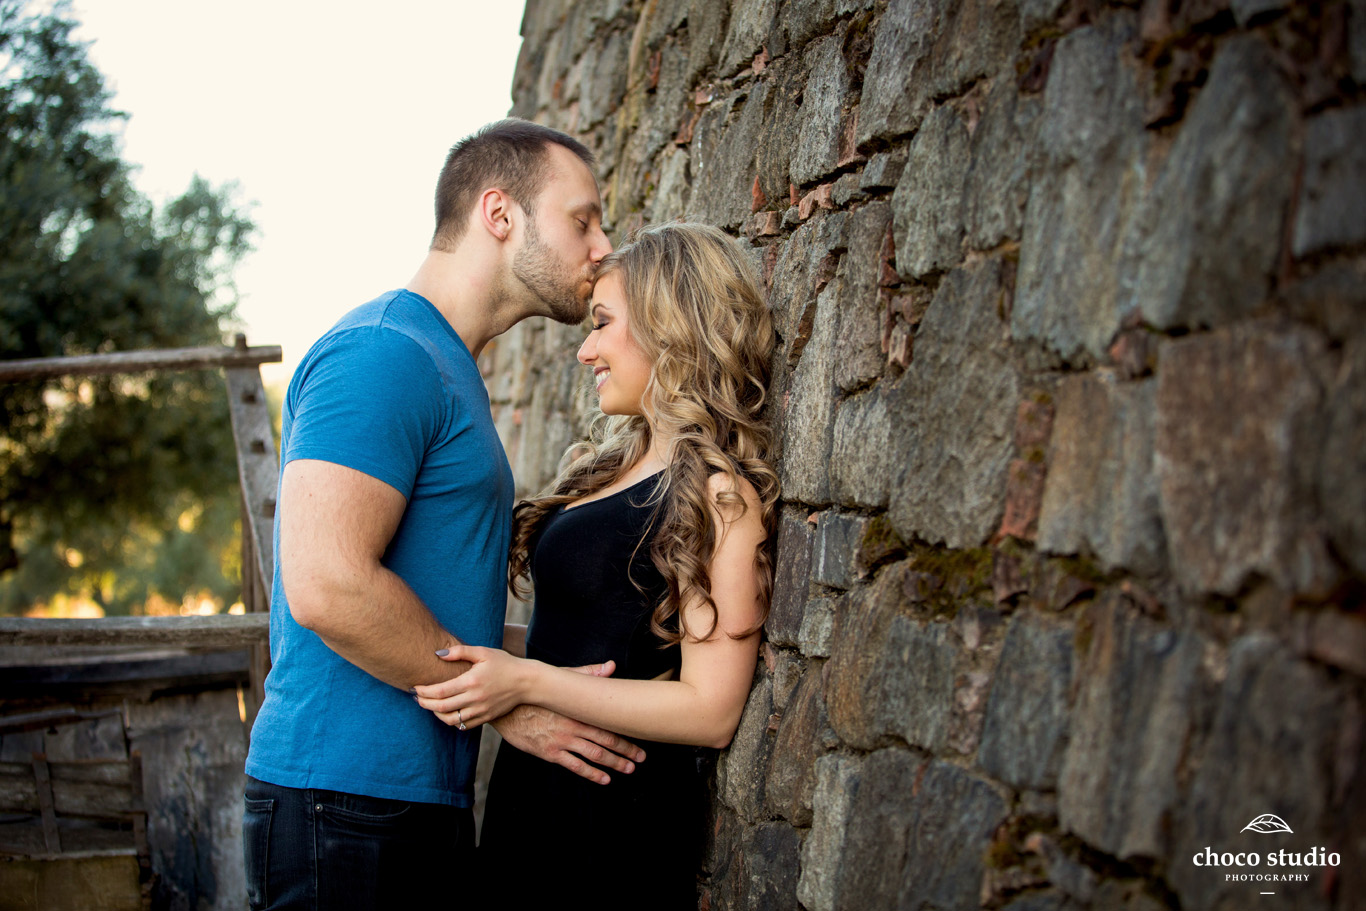 Castello di Amorosa Romantic Engagement Session